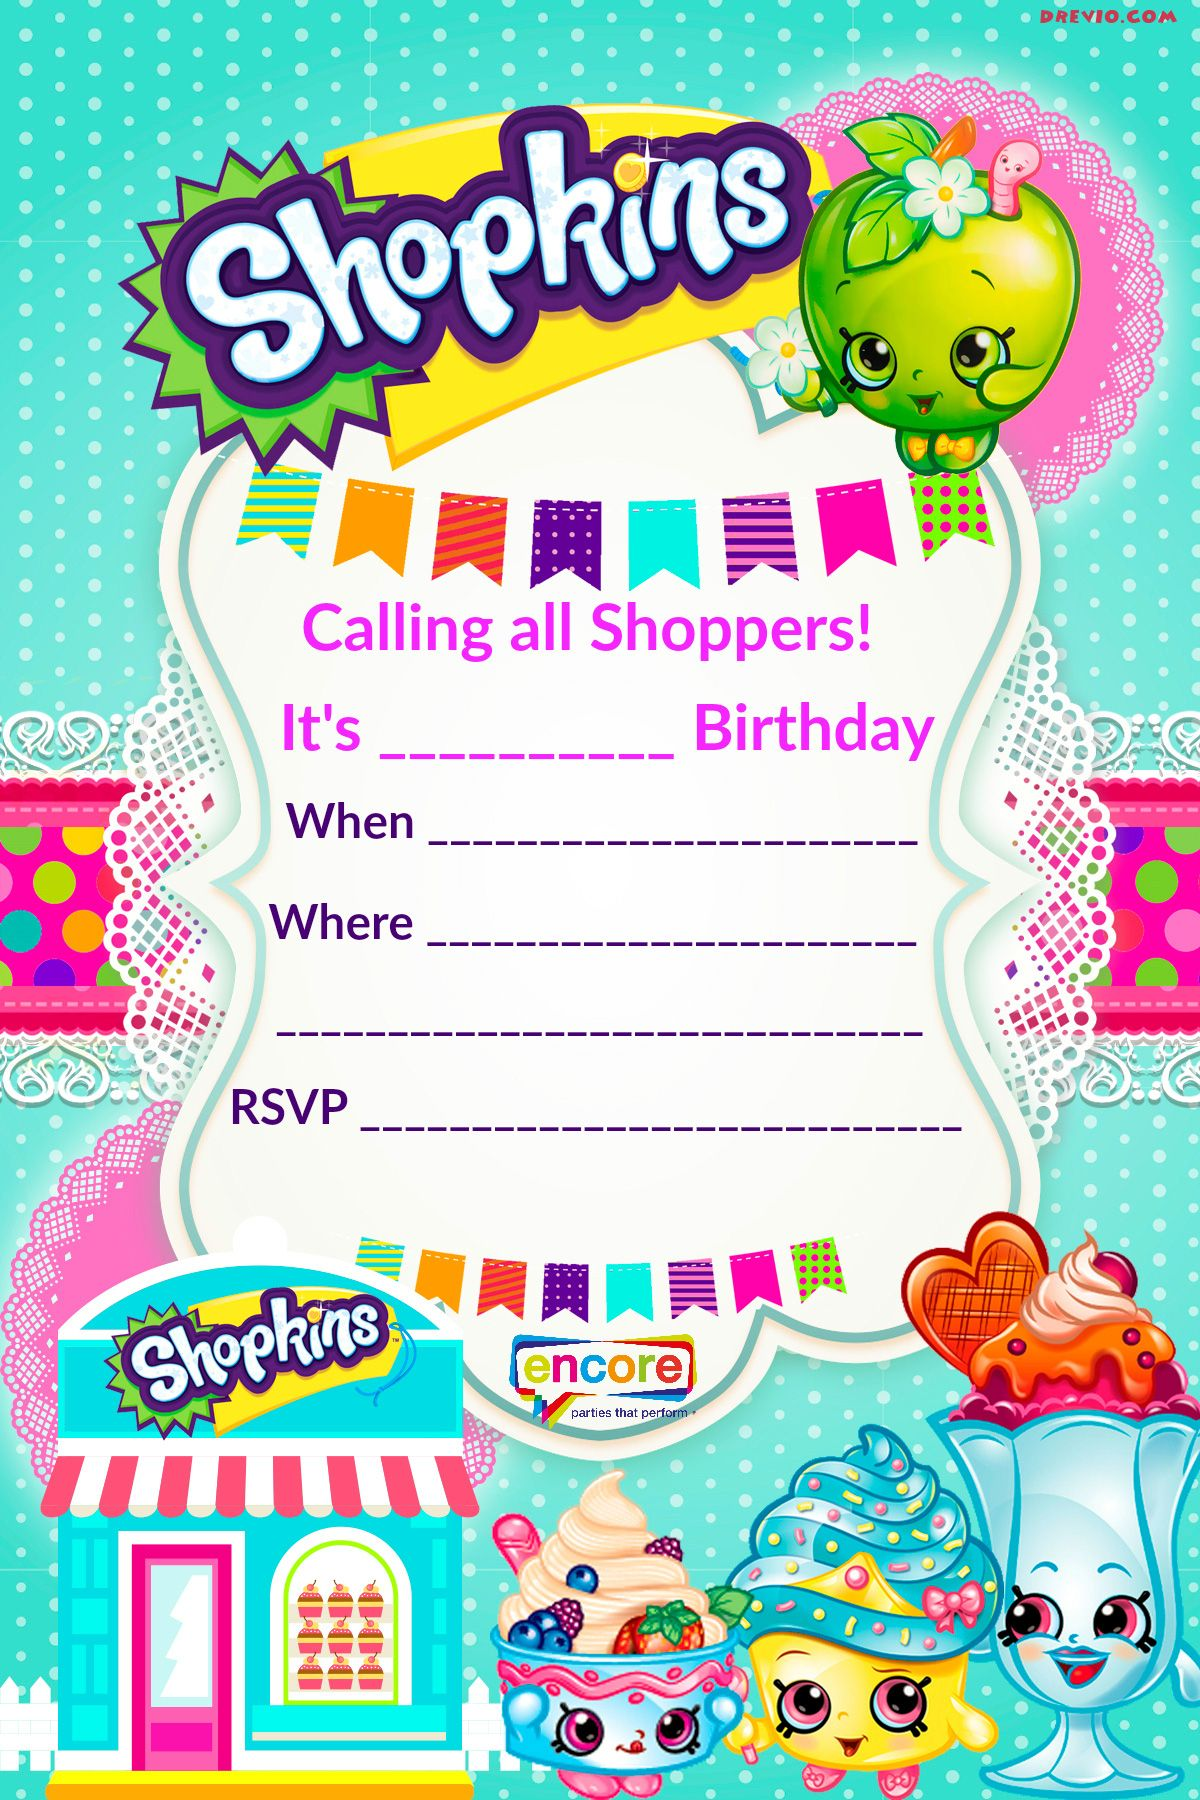 Updated FREE Printable Shopkins Birthday Invitation Template - Blank shopkins birthday invitations